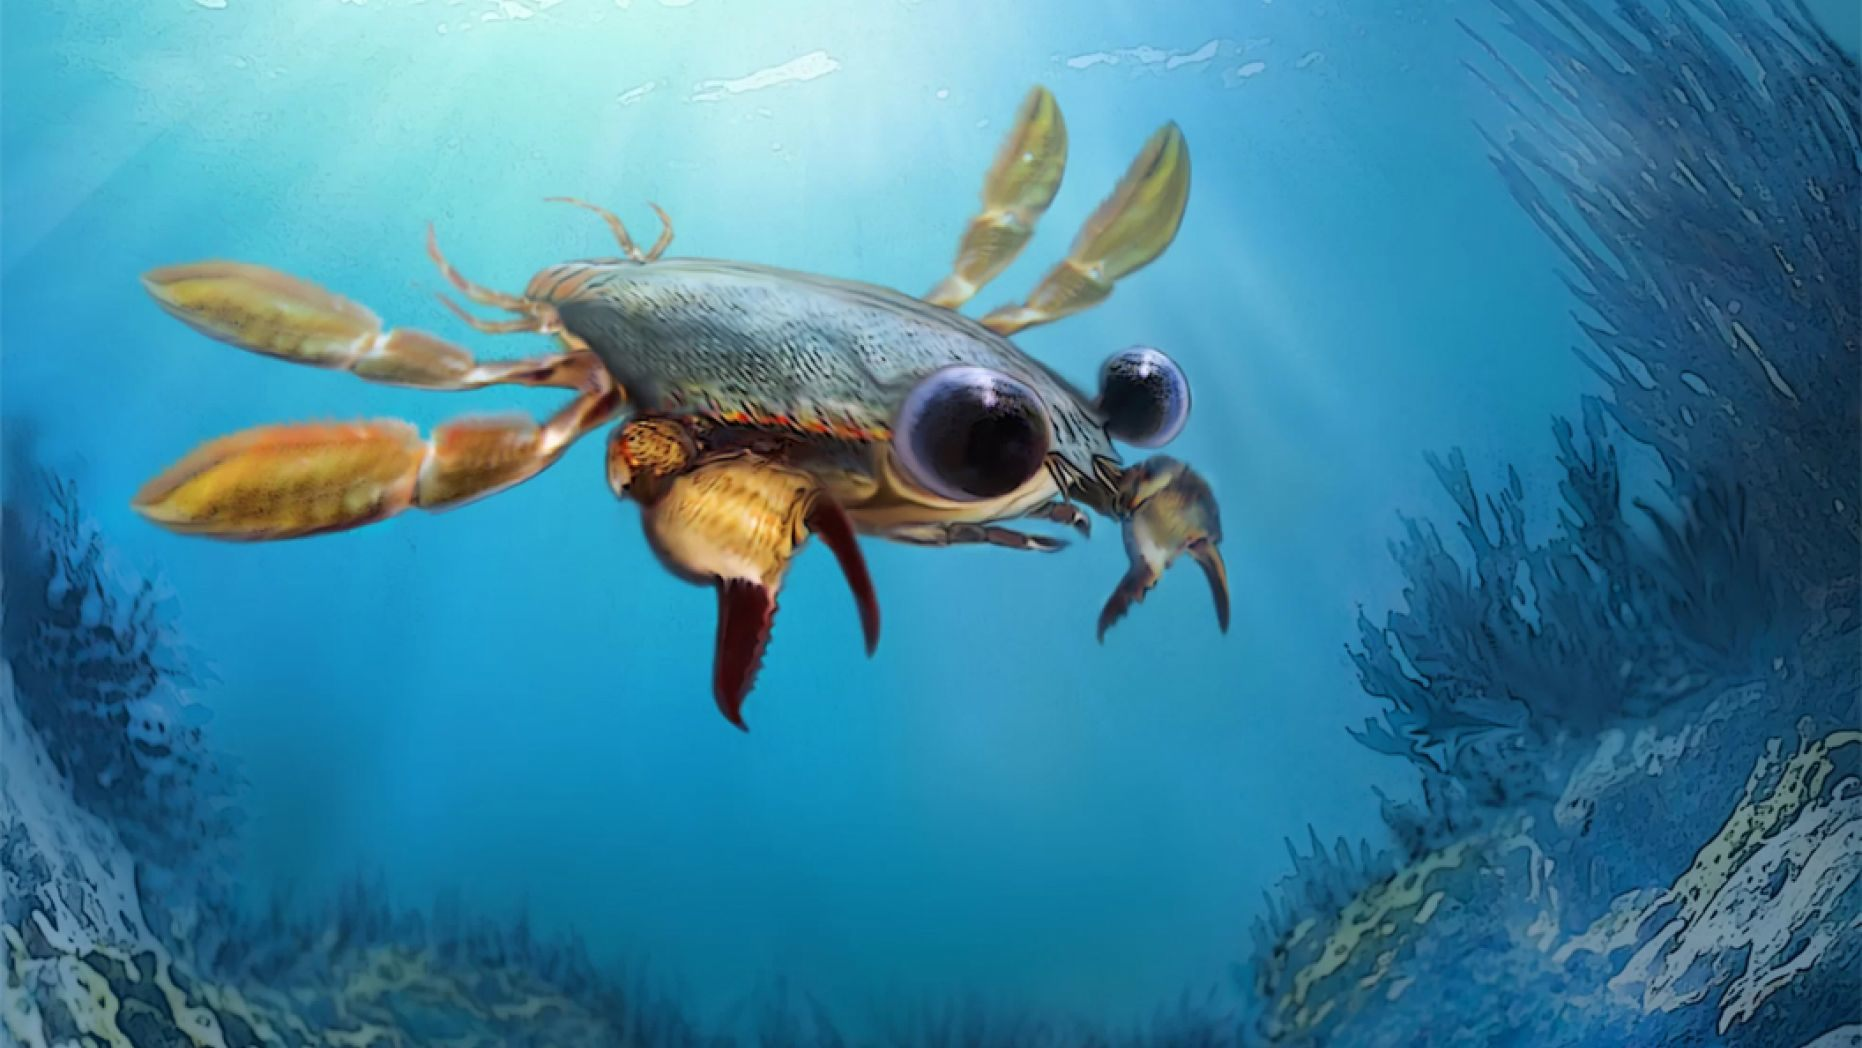 'Utterly Bizarre' Chimera Crab Fossil Discovered